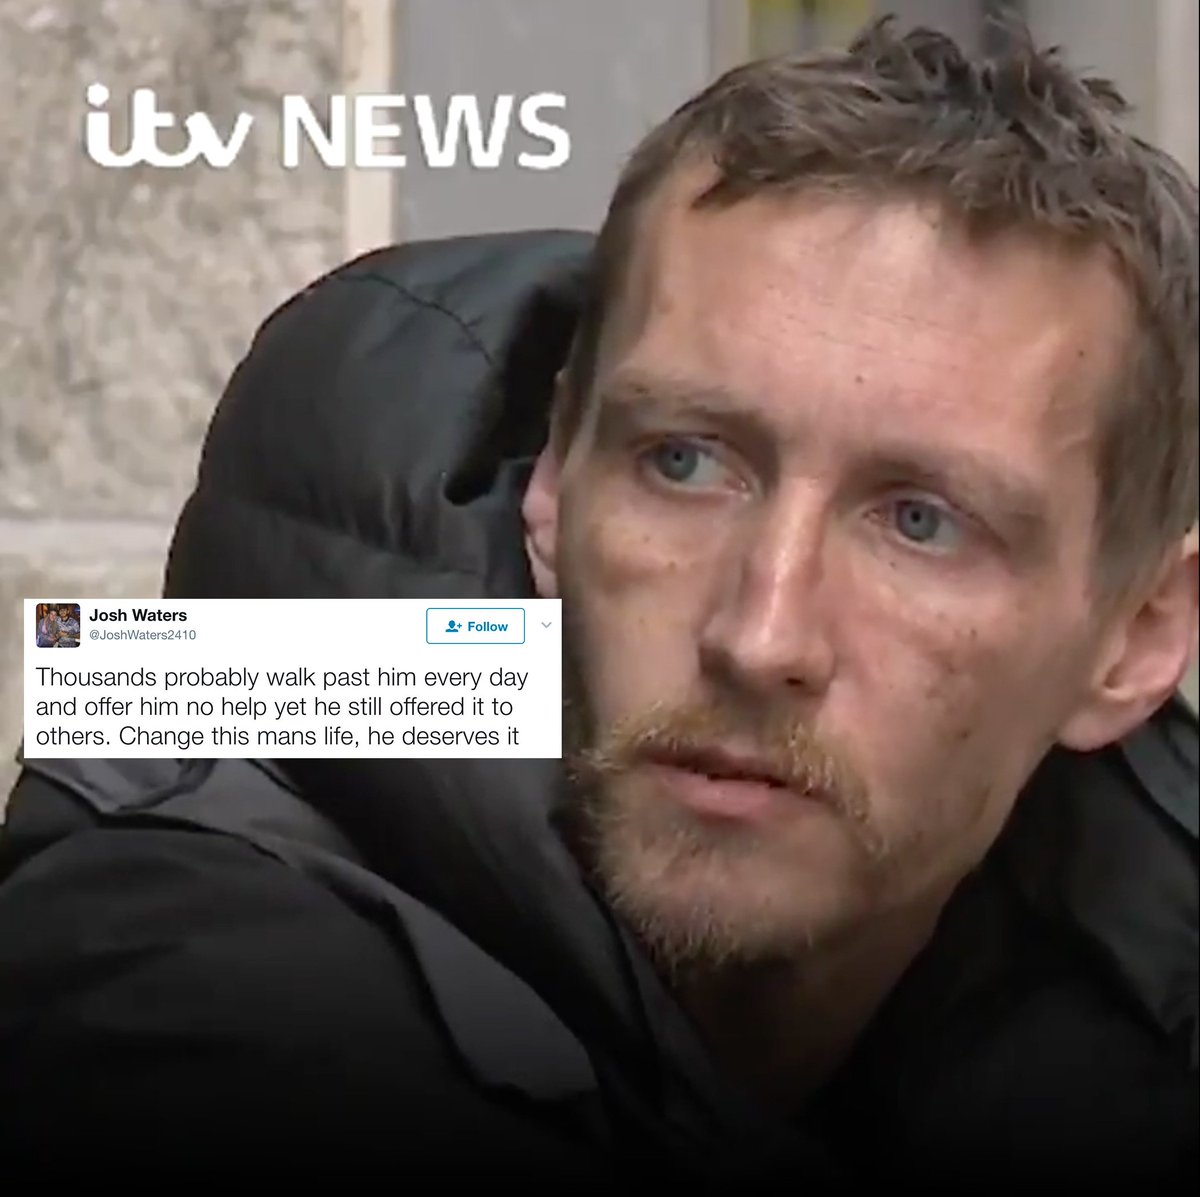 People are praising the homeless men who rushed to help those injured in the Manchester attack https://t.co/2hCVo8wx7l